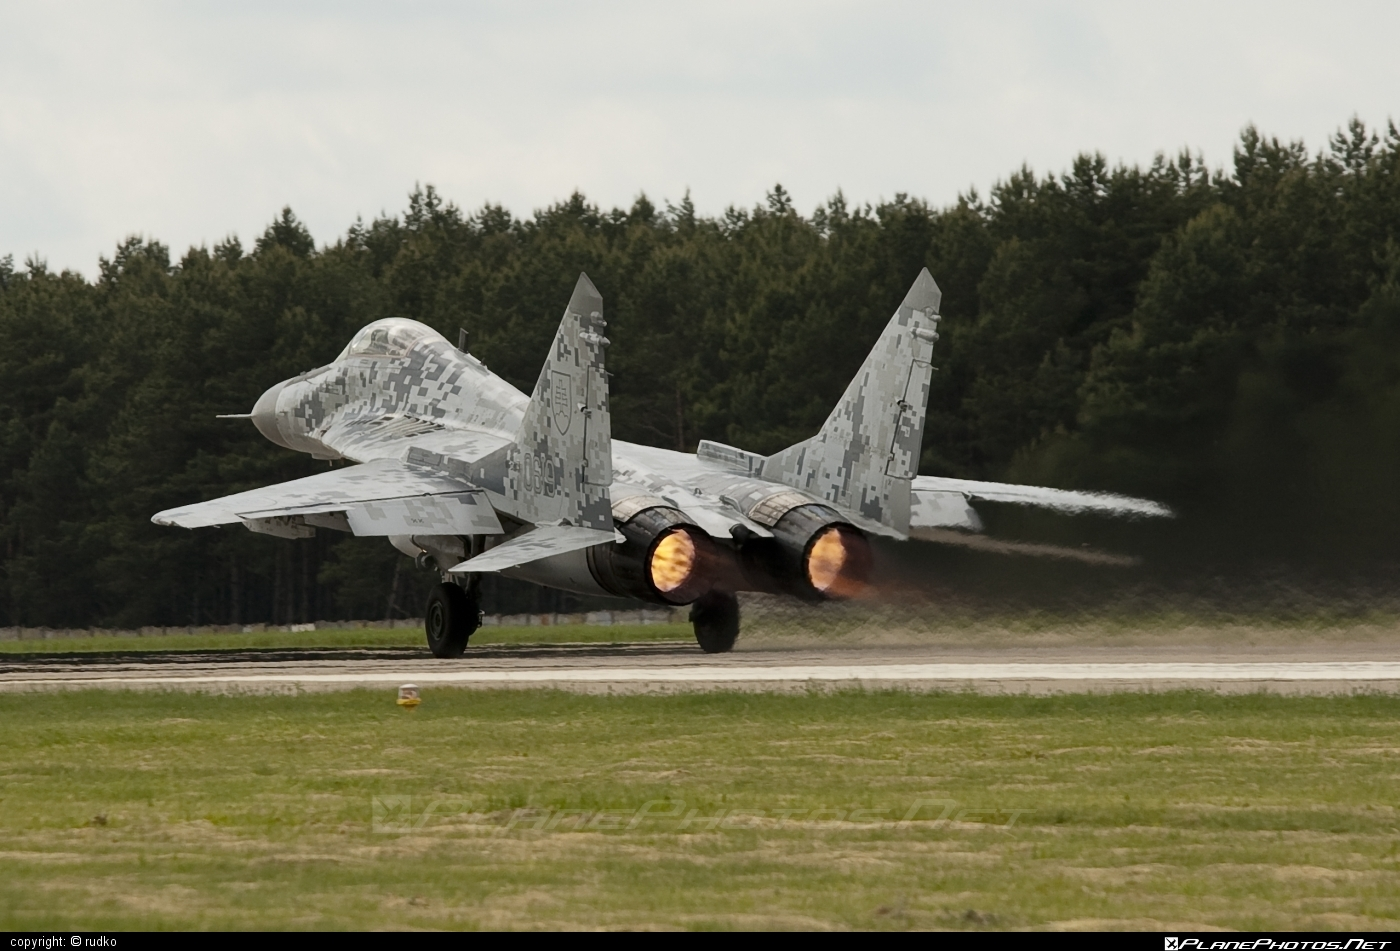 Mikoyan-Gurevich MiG-29AS - 0619 operated by Vzdušné sily OS SR (Slovak Air Force) #mig #mig29 #mig29as #mikoyangurevich #slovakairforce #vzdusnesilyossr